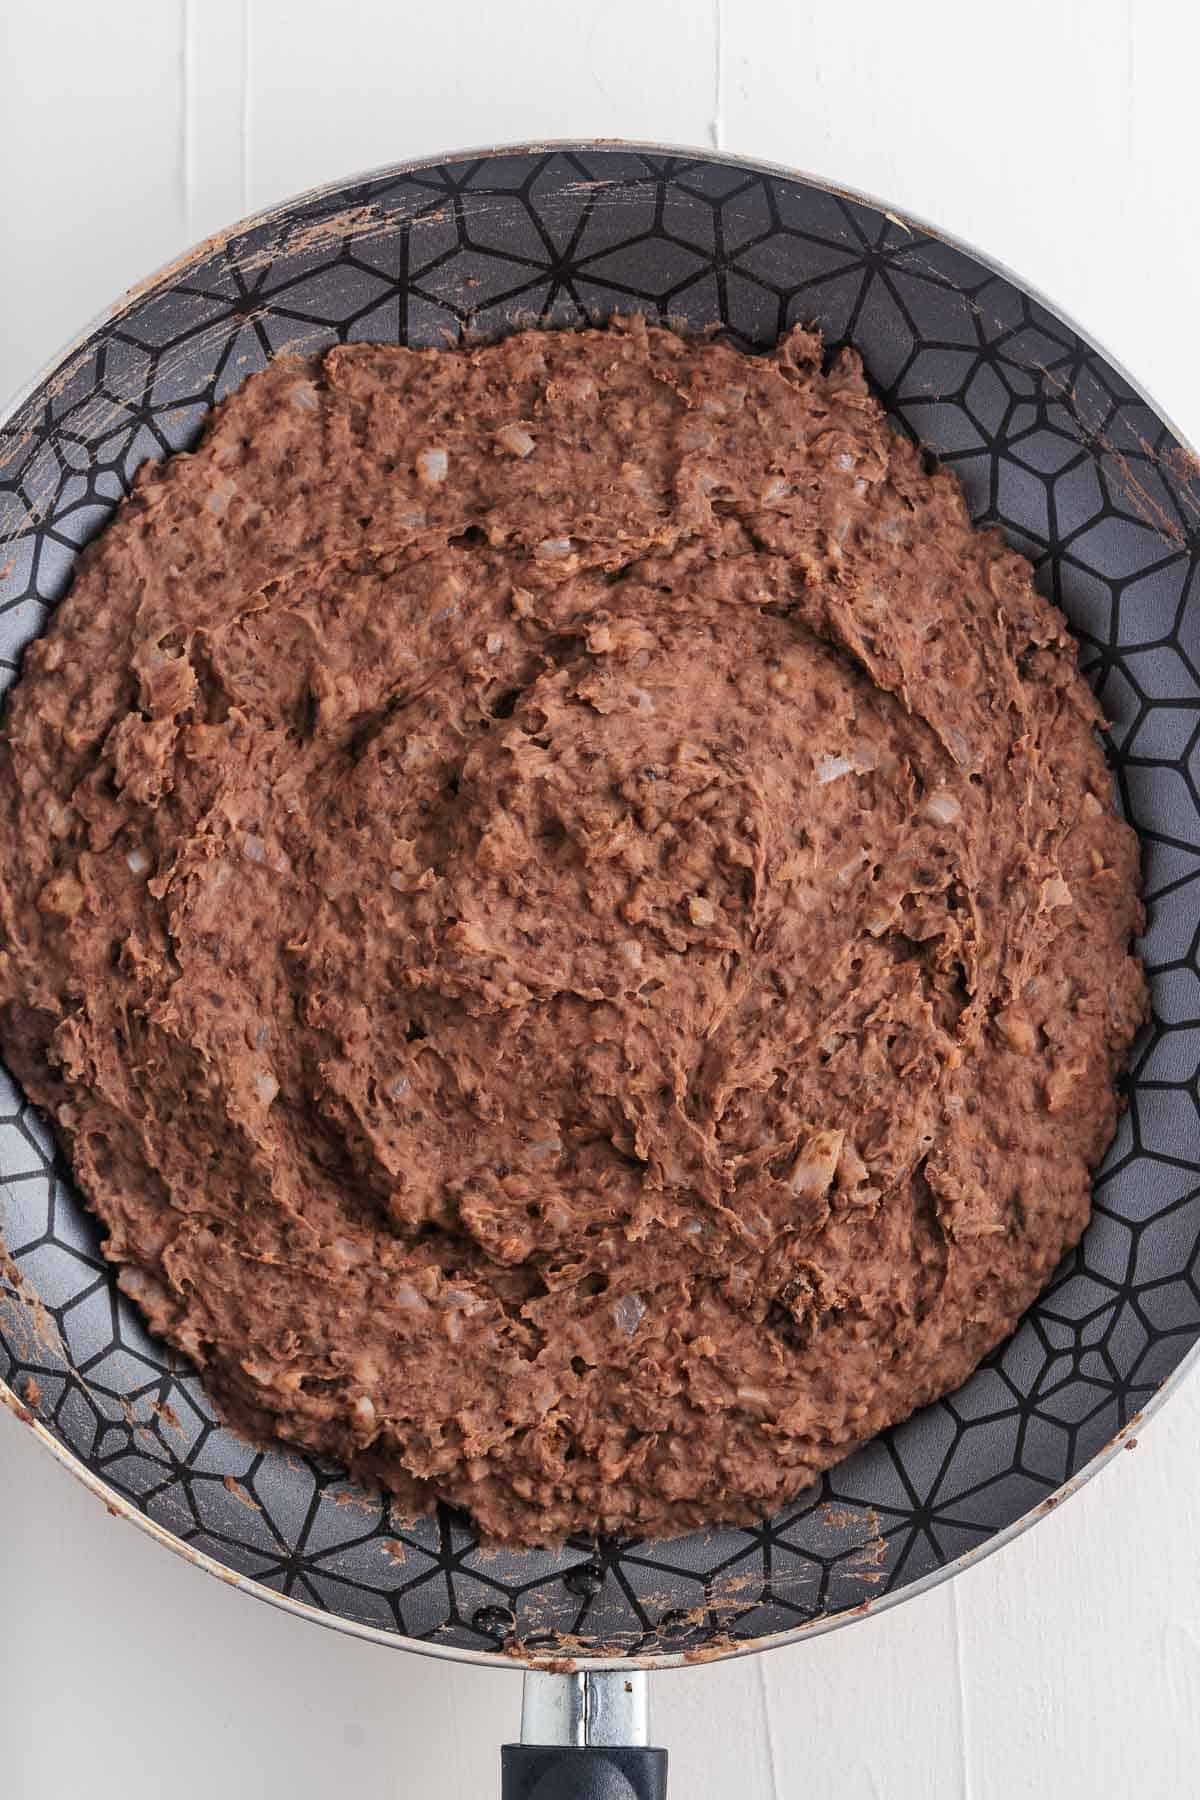 Refried beans in a frying pan